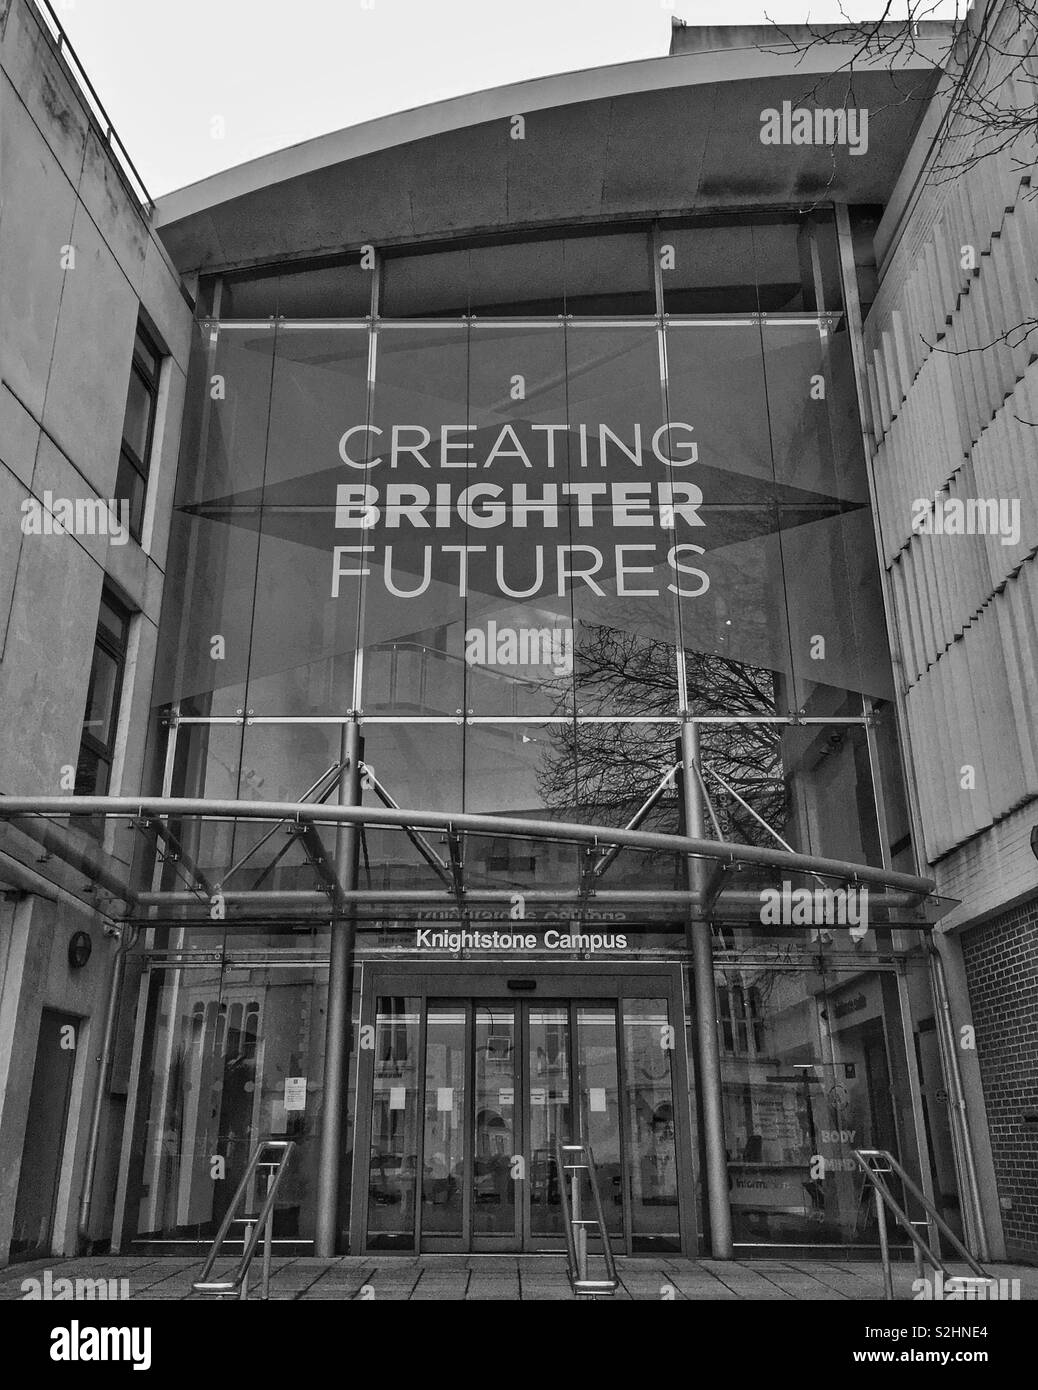 """The entrance to the Knightstone Campus of Weston College in Weston-super-Mare, UK with a banner bearing the slogan """"CREATING BRIGHTER FUTURES"""" Stock Photo"""